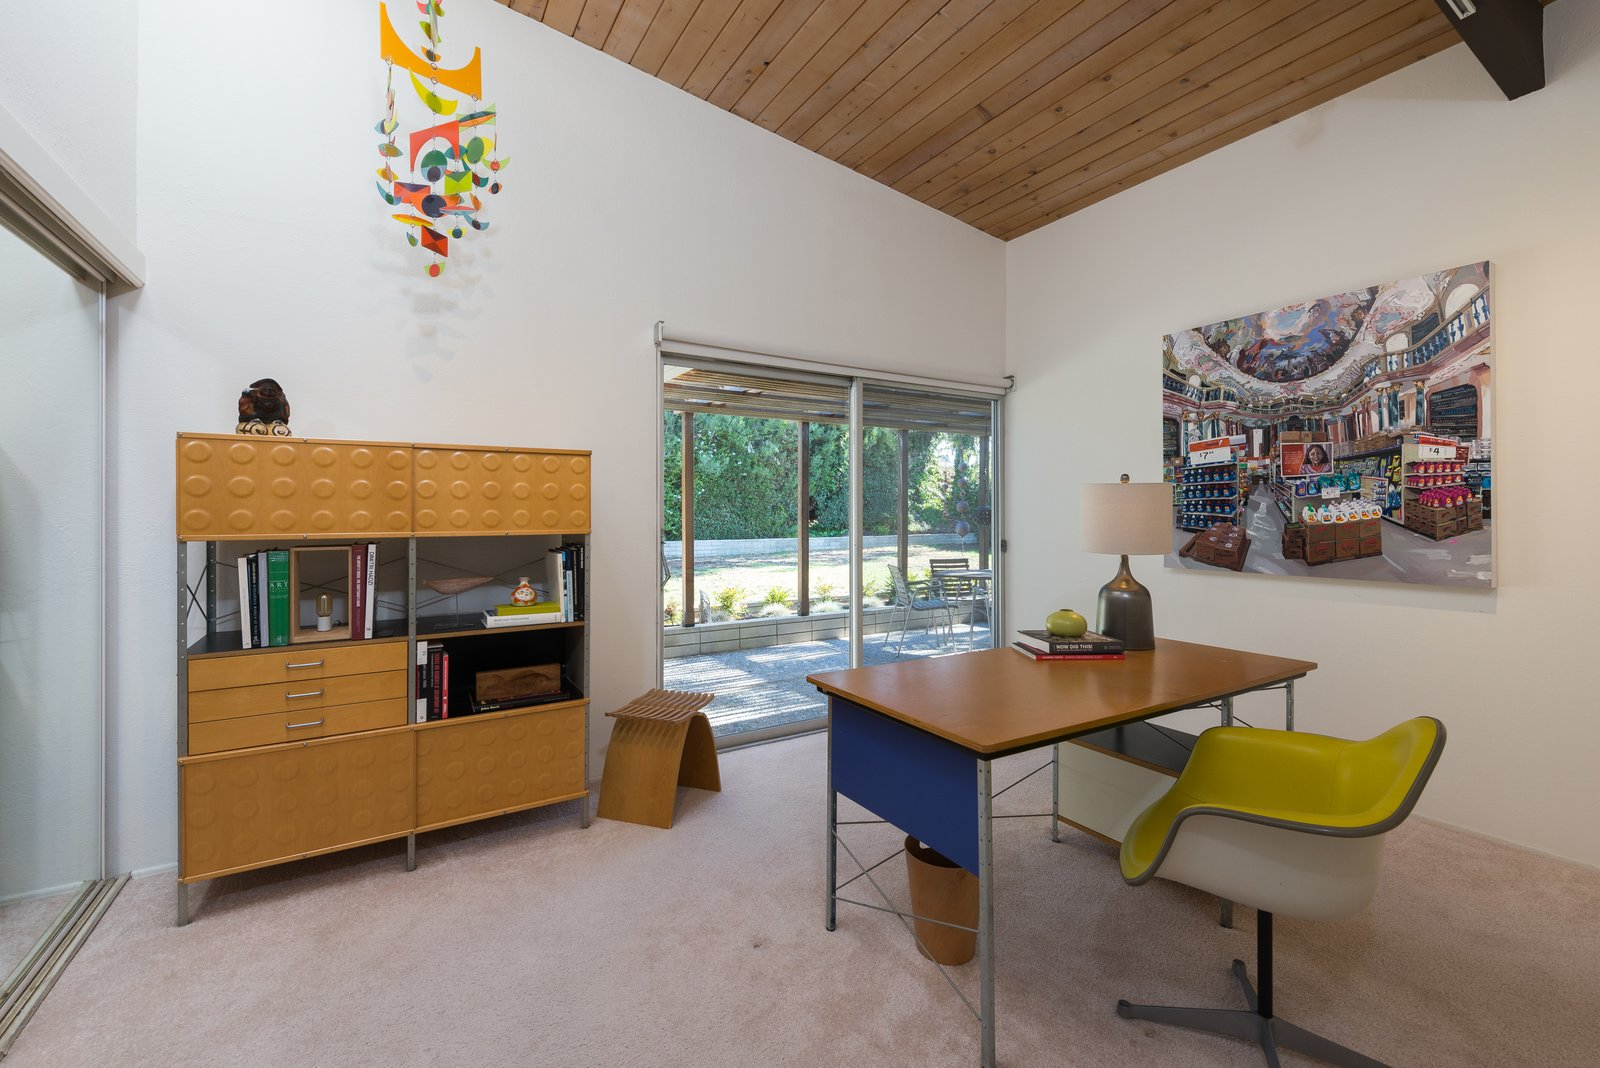 Office, Study, Desk, Chair, Carpet, and Lamps  Best Office Lamps Carpet Photos from An Immaculate Midcentury Abode in San Diego Asks $1.55M